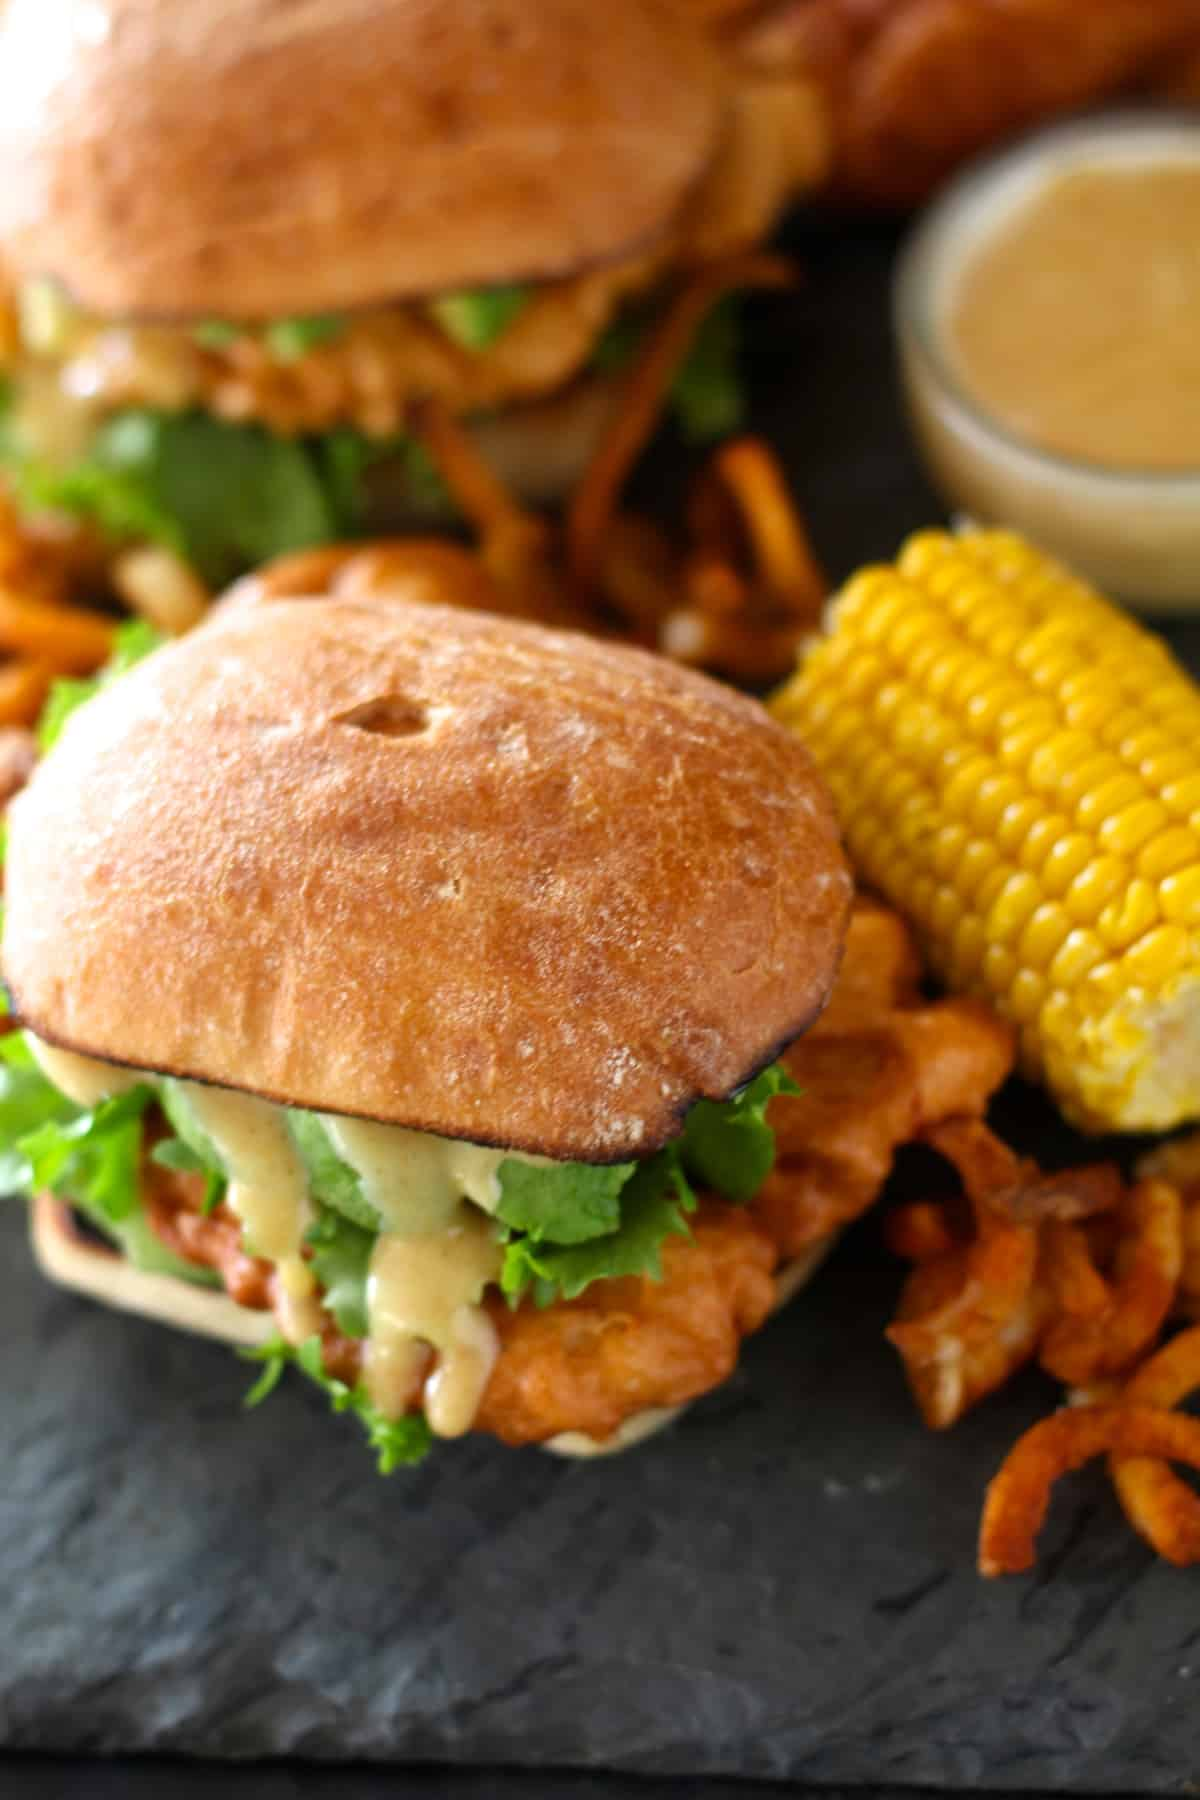 overhead shot of copycat chili's chicken crispers in a sandwich on a black table next to an ear of corn